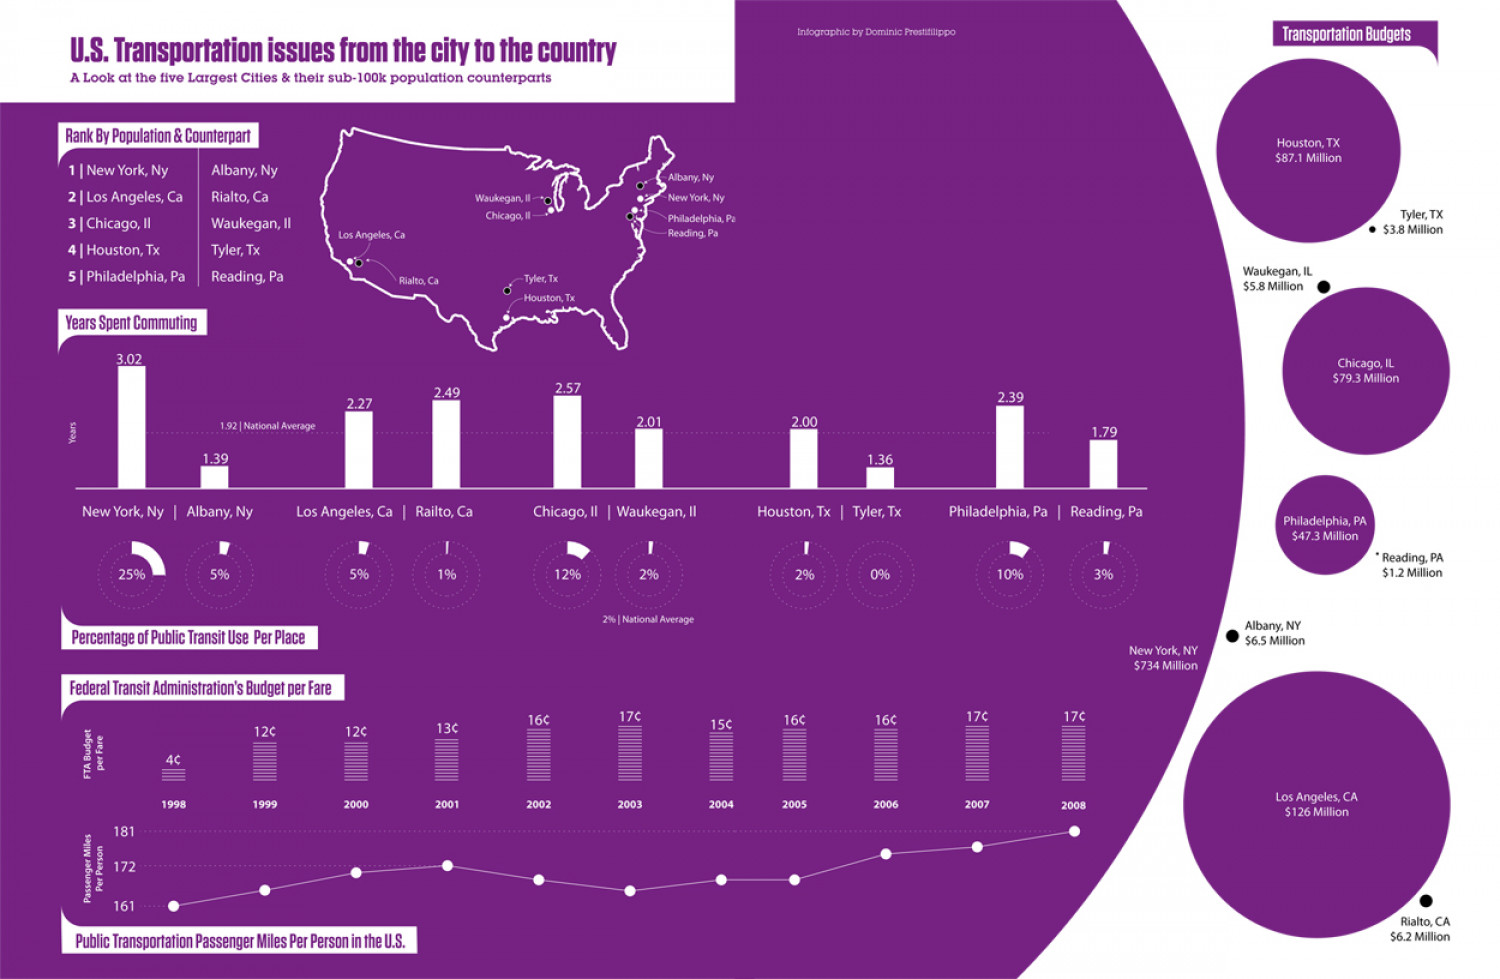 United States Transportation Issues From City to Country Infographic